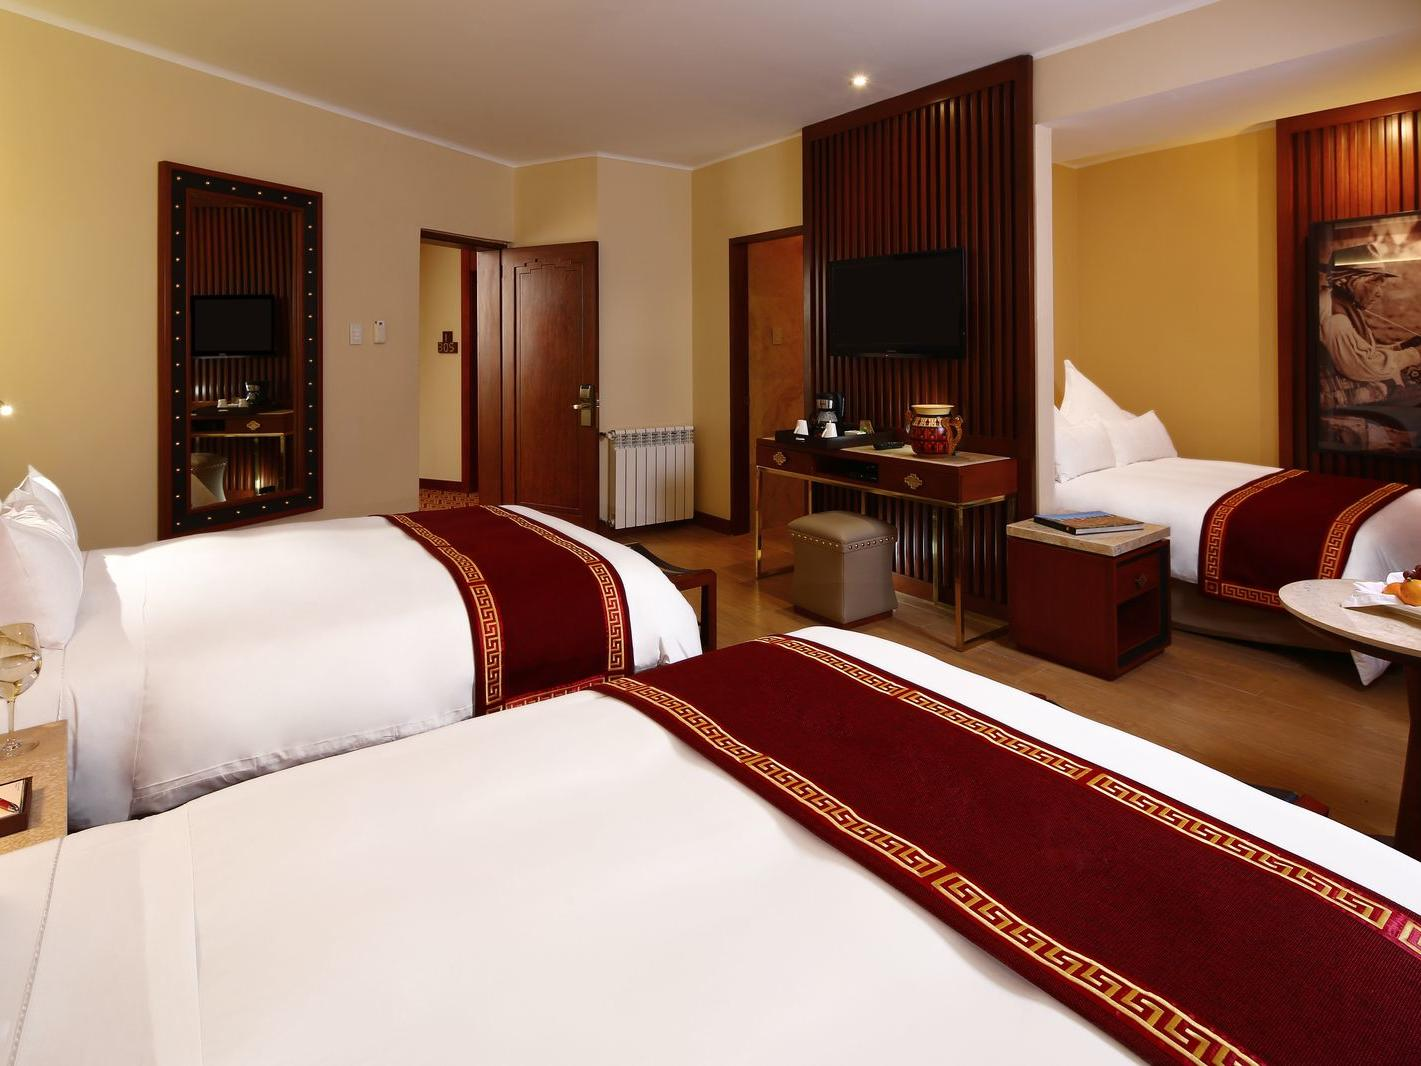 Sumaq Deluxe family room with three beds at Hotel Sumaq